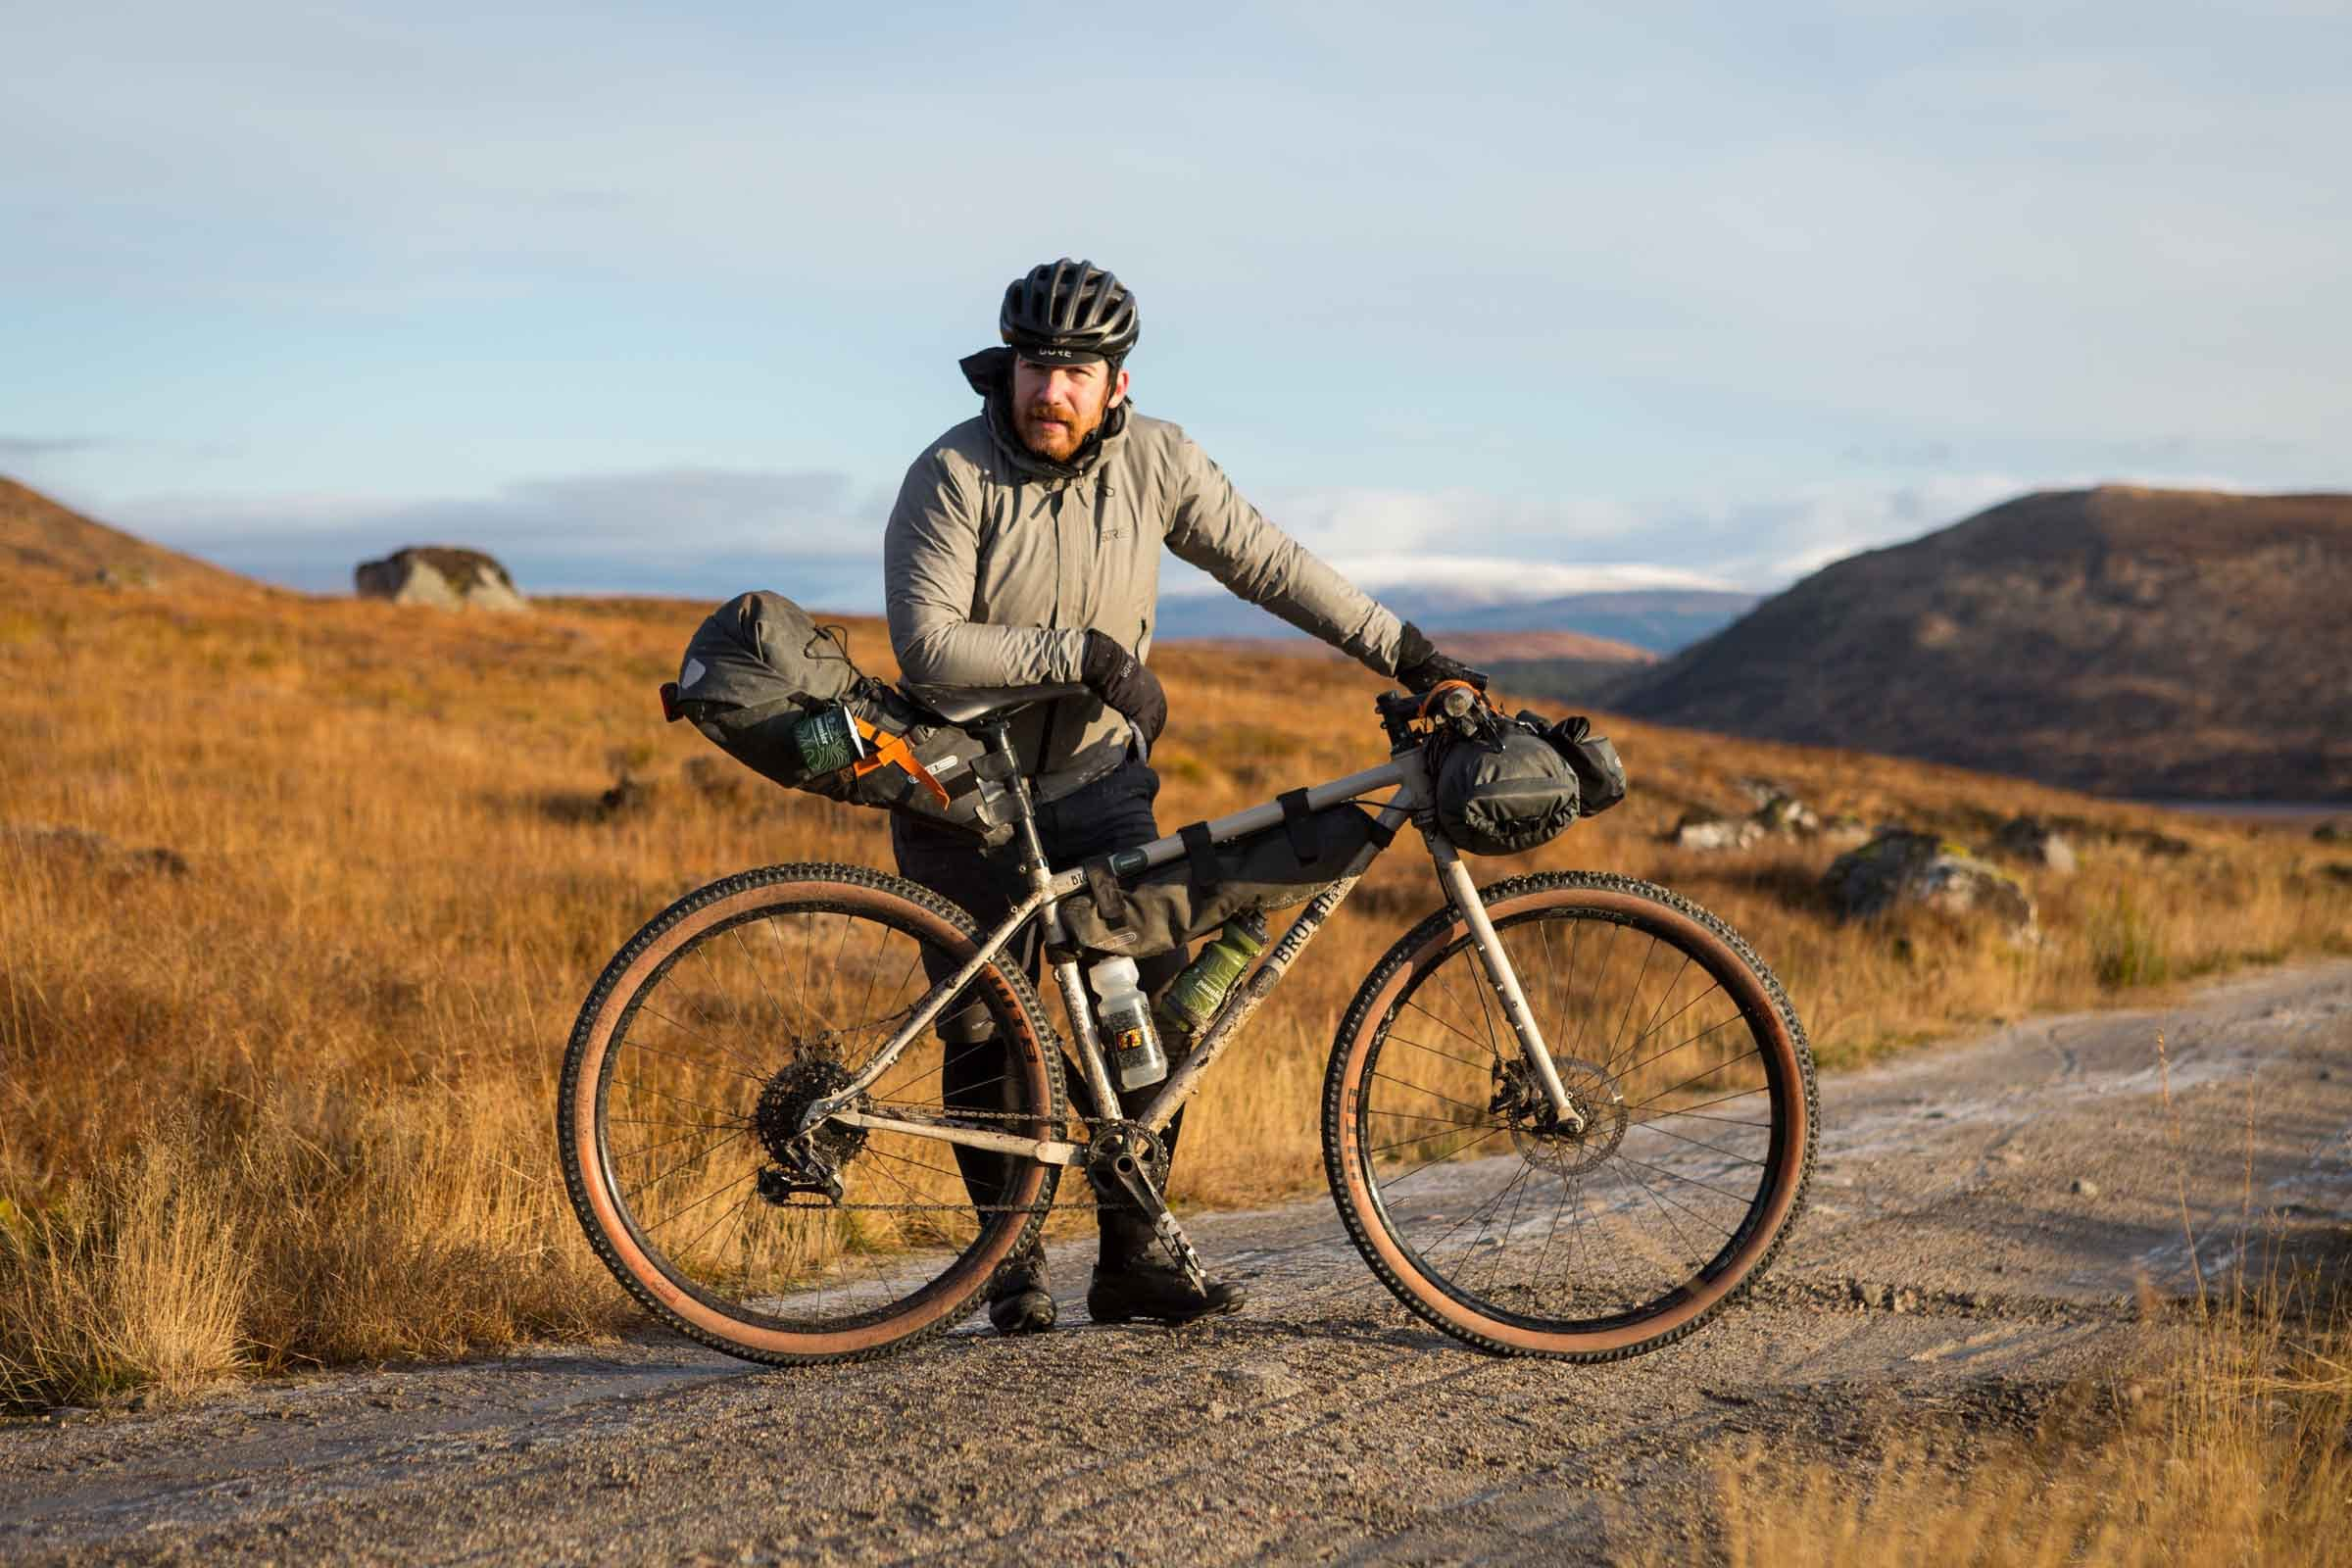 Pannier_Rainspotting_Bikepacking-Scotland-Highlands_059